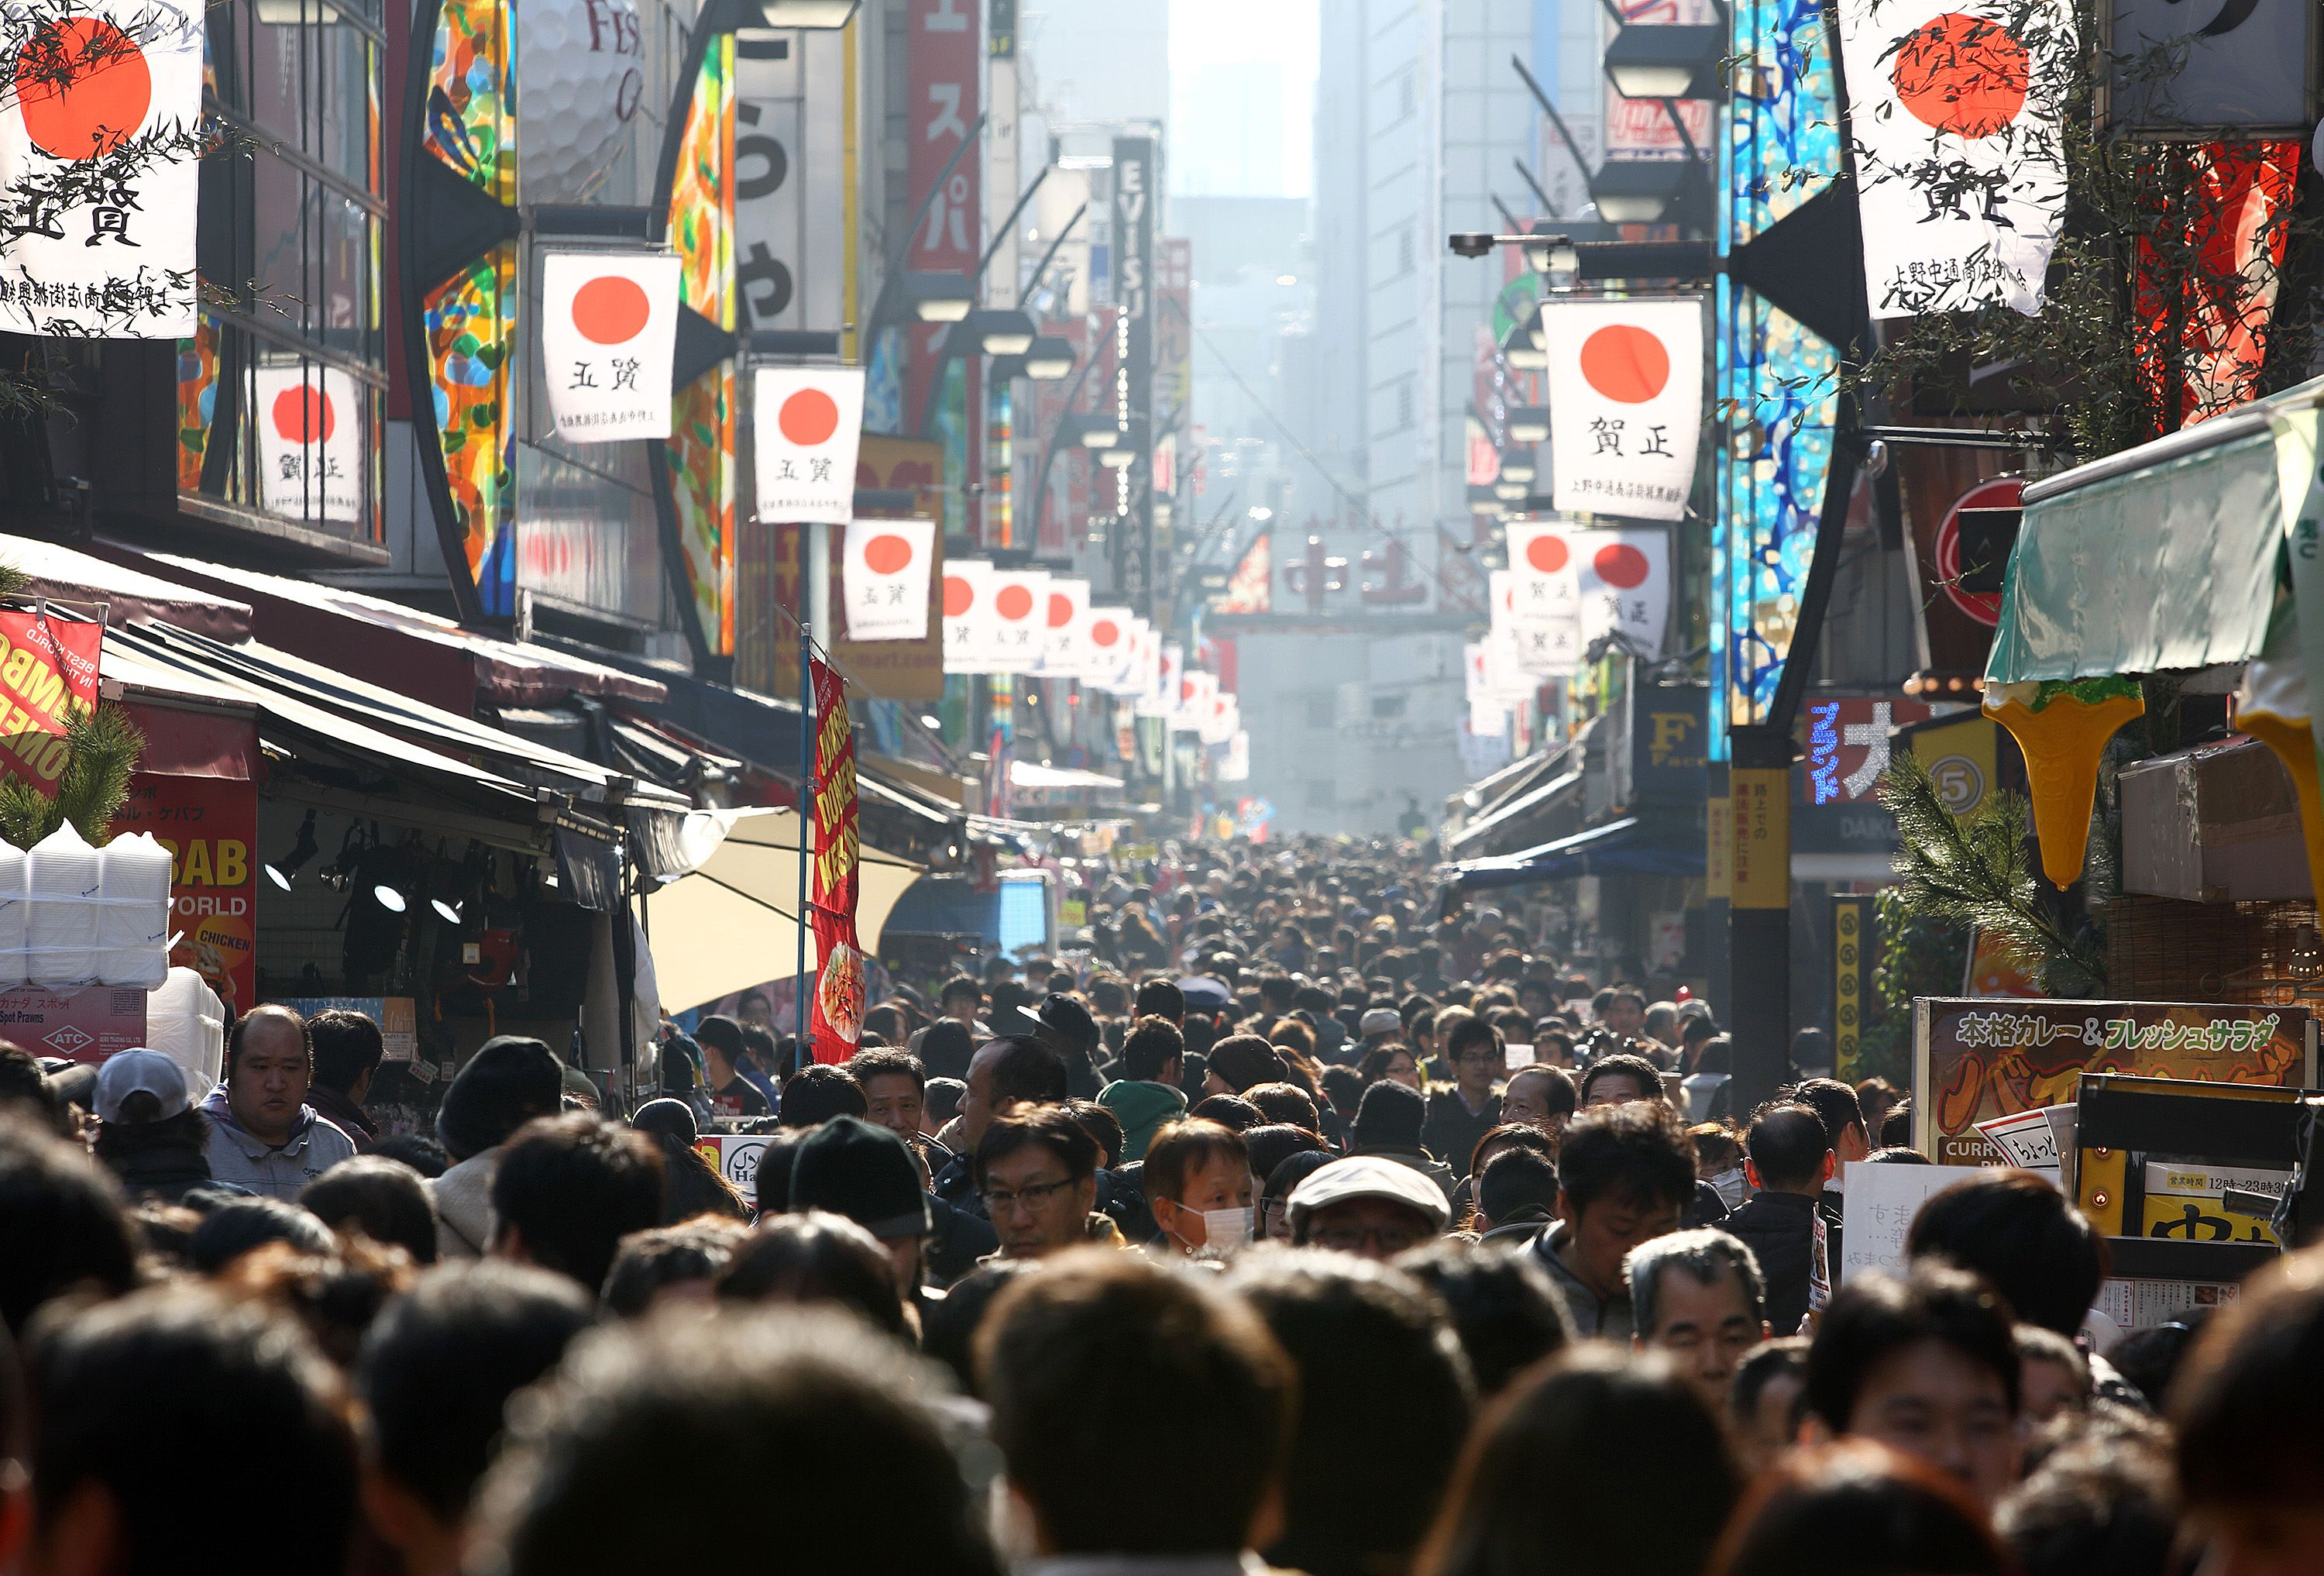 Japan expects economy to recover in fiscal 2021, Government & Economy - THE BUSINESS TIMES